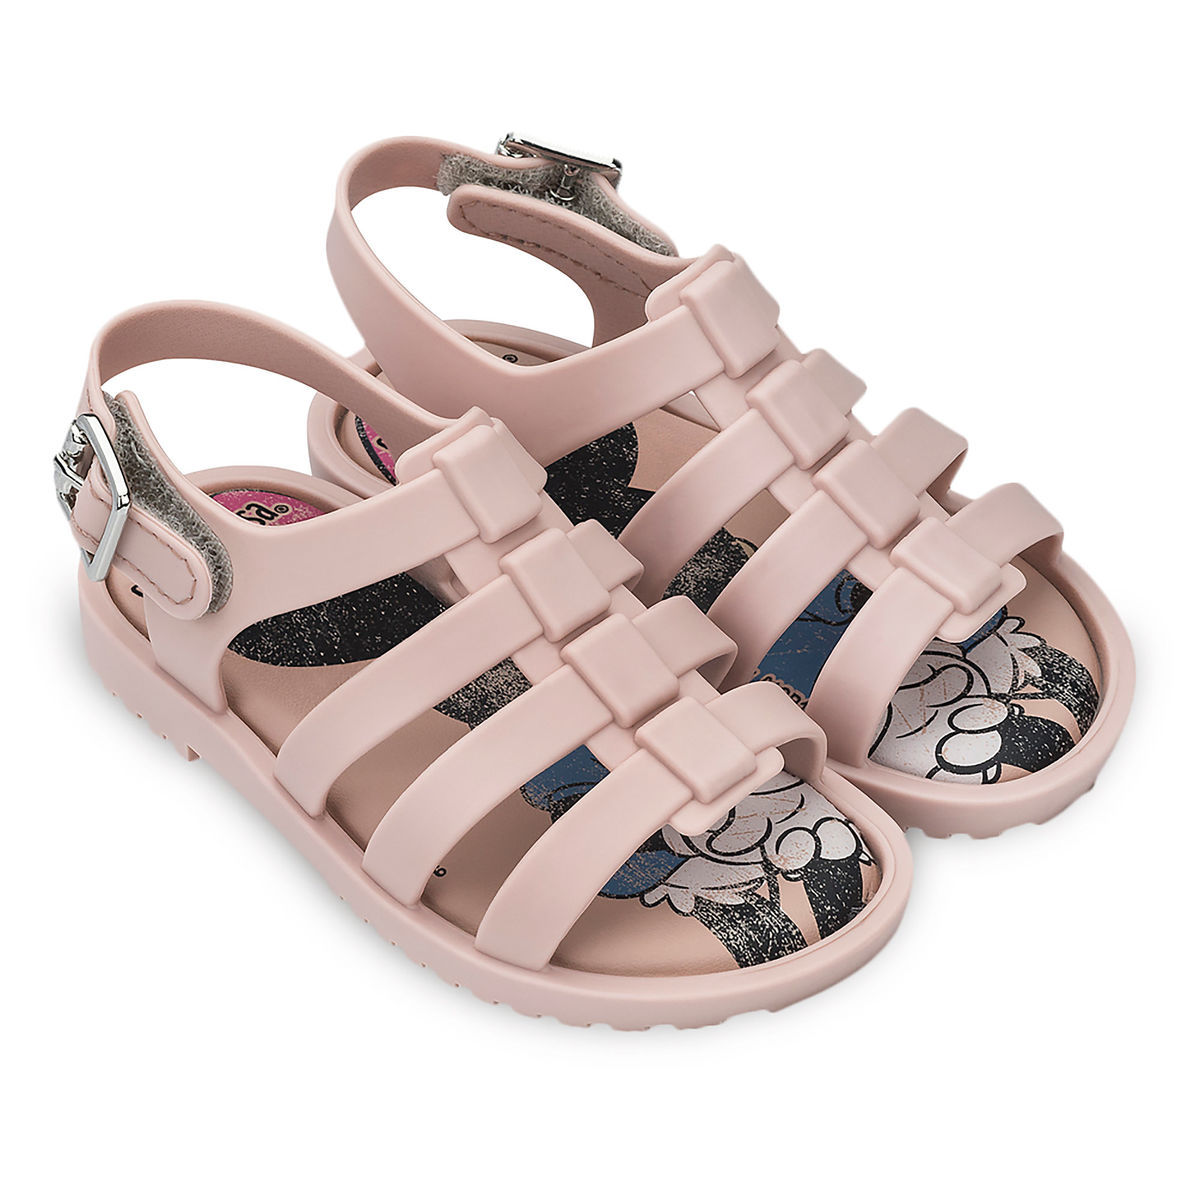 a54f4ba87e000 Product Image of Minnie Mouse Sandals for Kids by Melissa Shoes   1